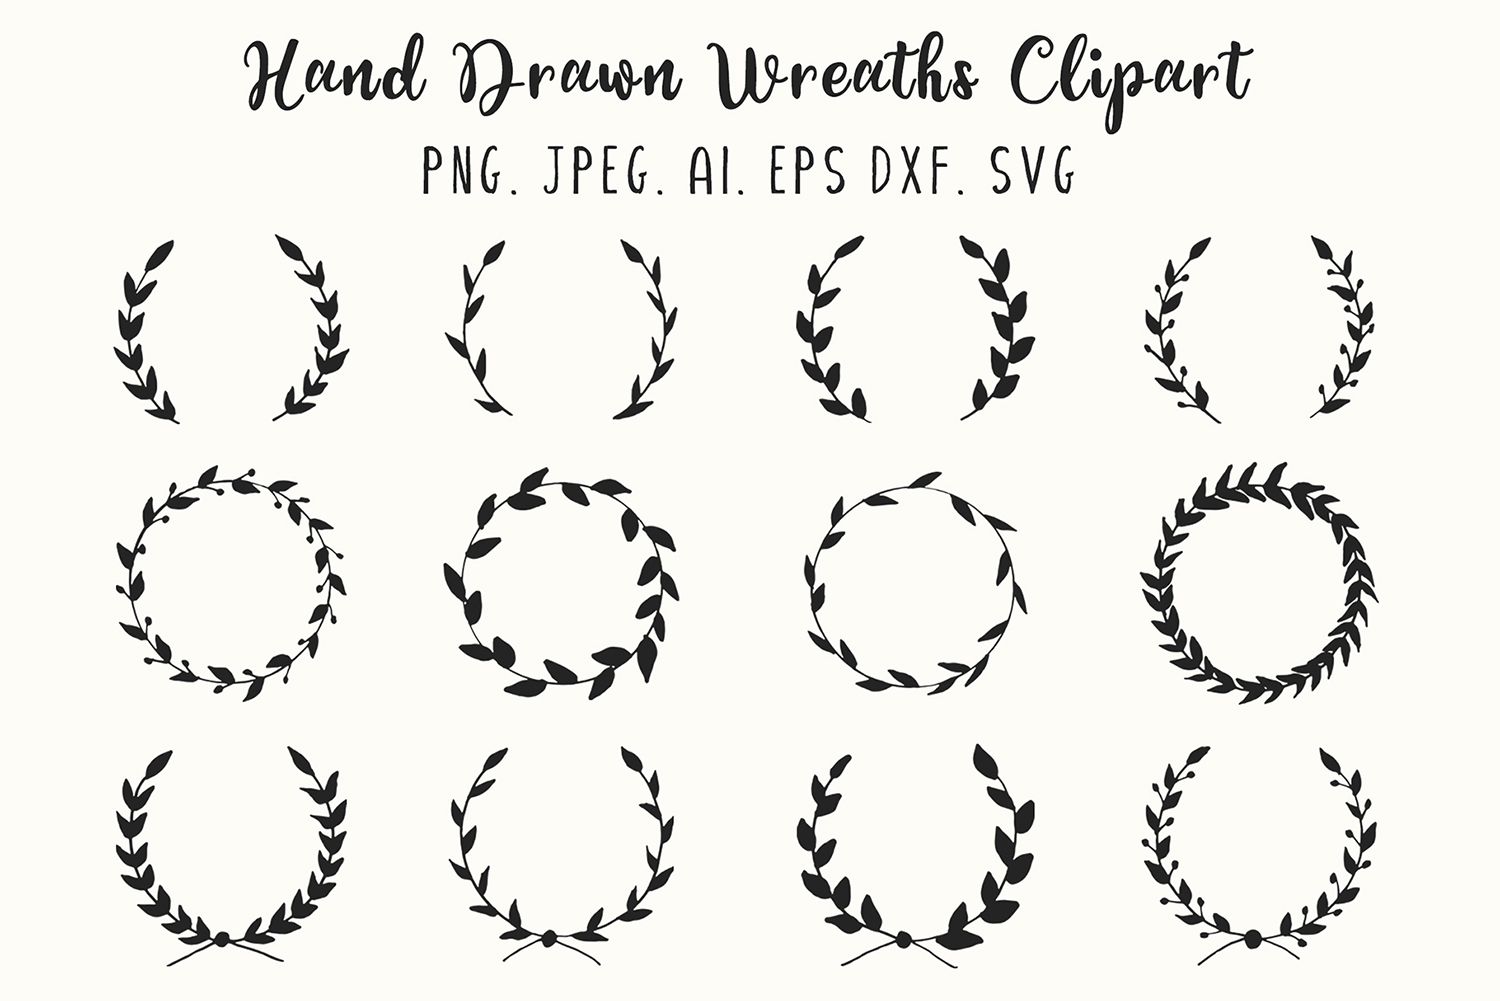 Download Free 12 Hand Drawn Wreaths Clipart Graphic By Creative Tacos for Cricut Explore, Silhouette and other cutting machines.